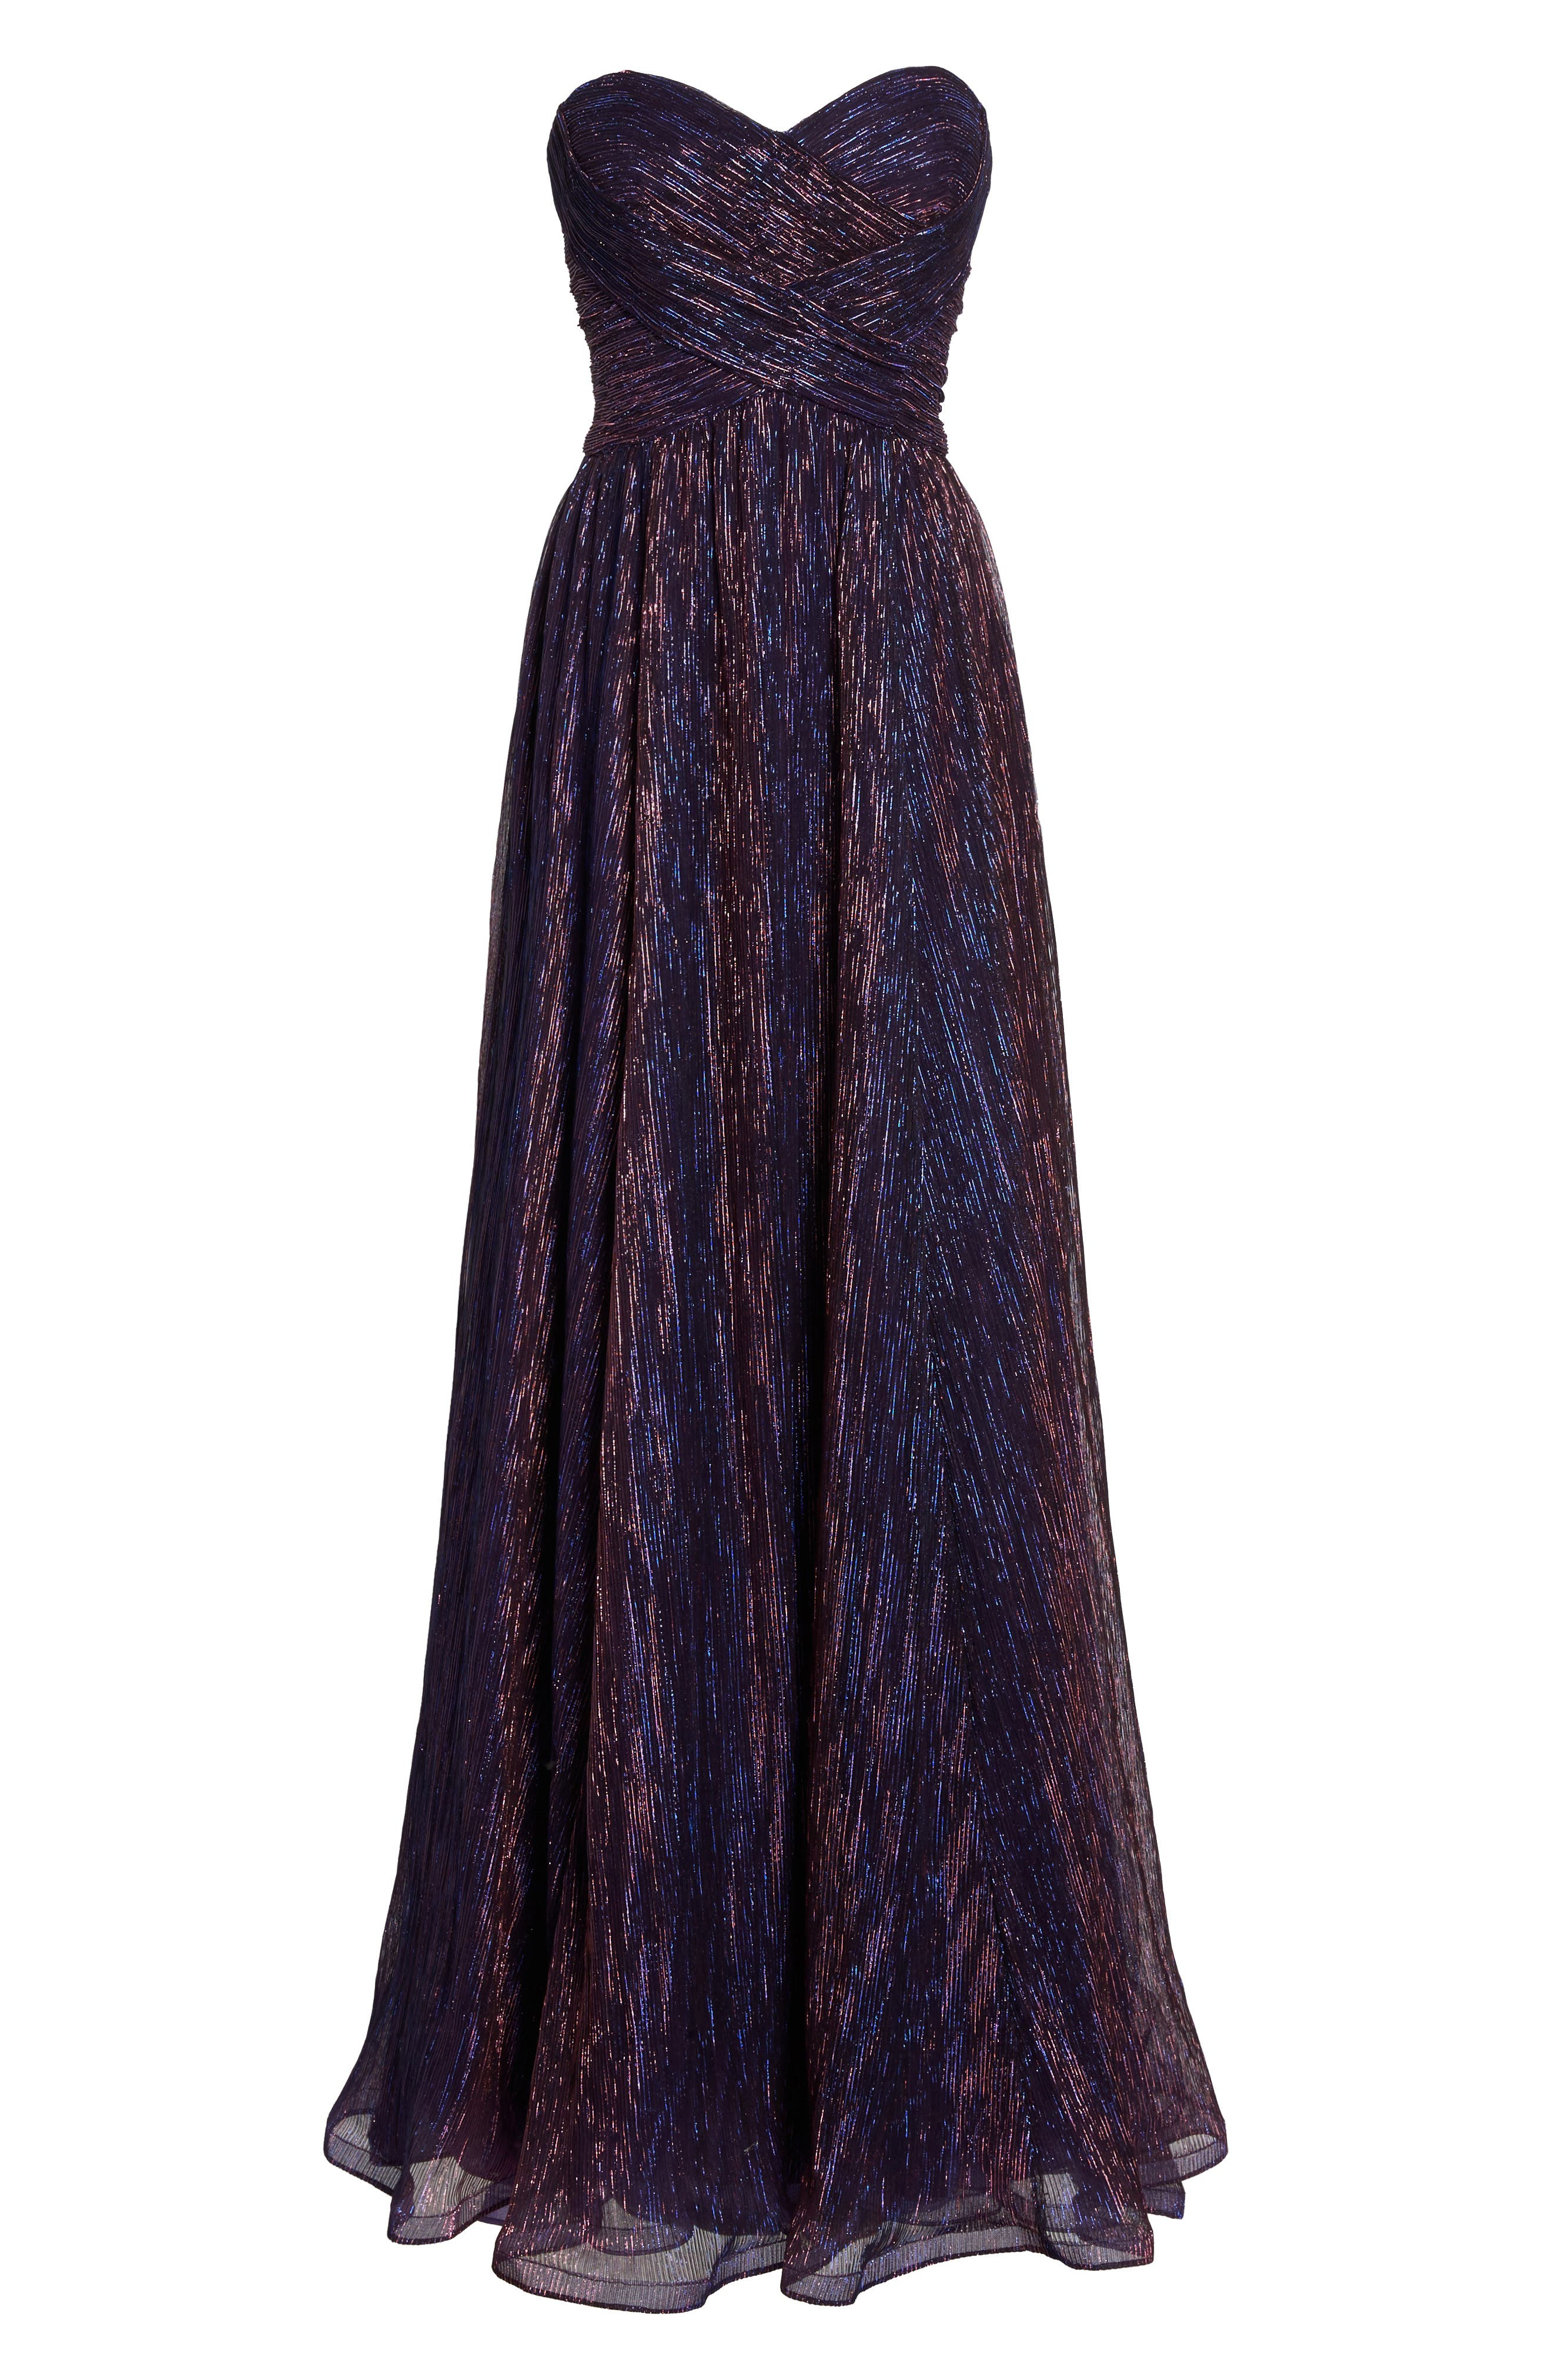 Metallic Strapless A-Line Gown,                             Alternate thumbnail 7, color,                             Purple/ Multi